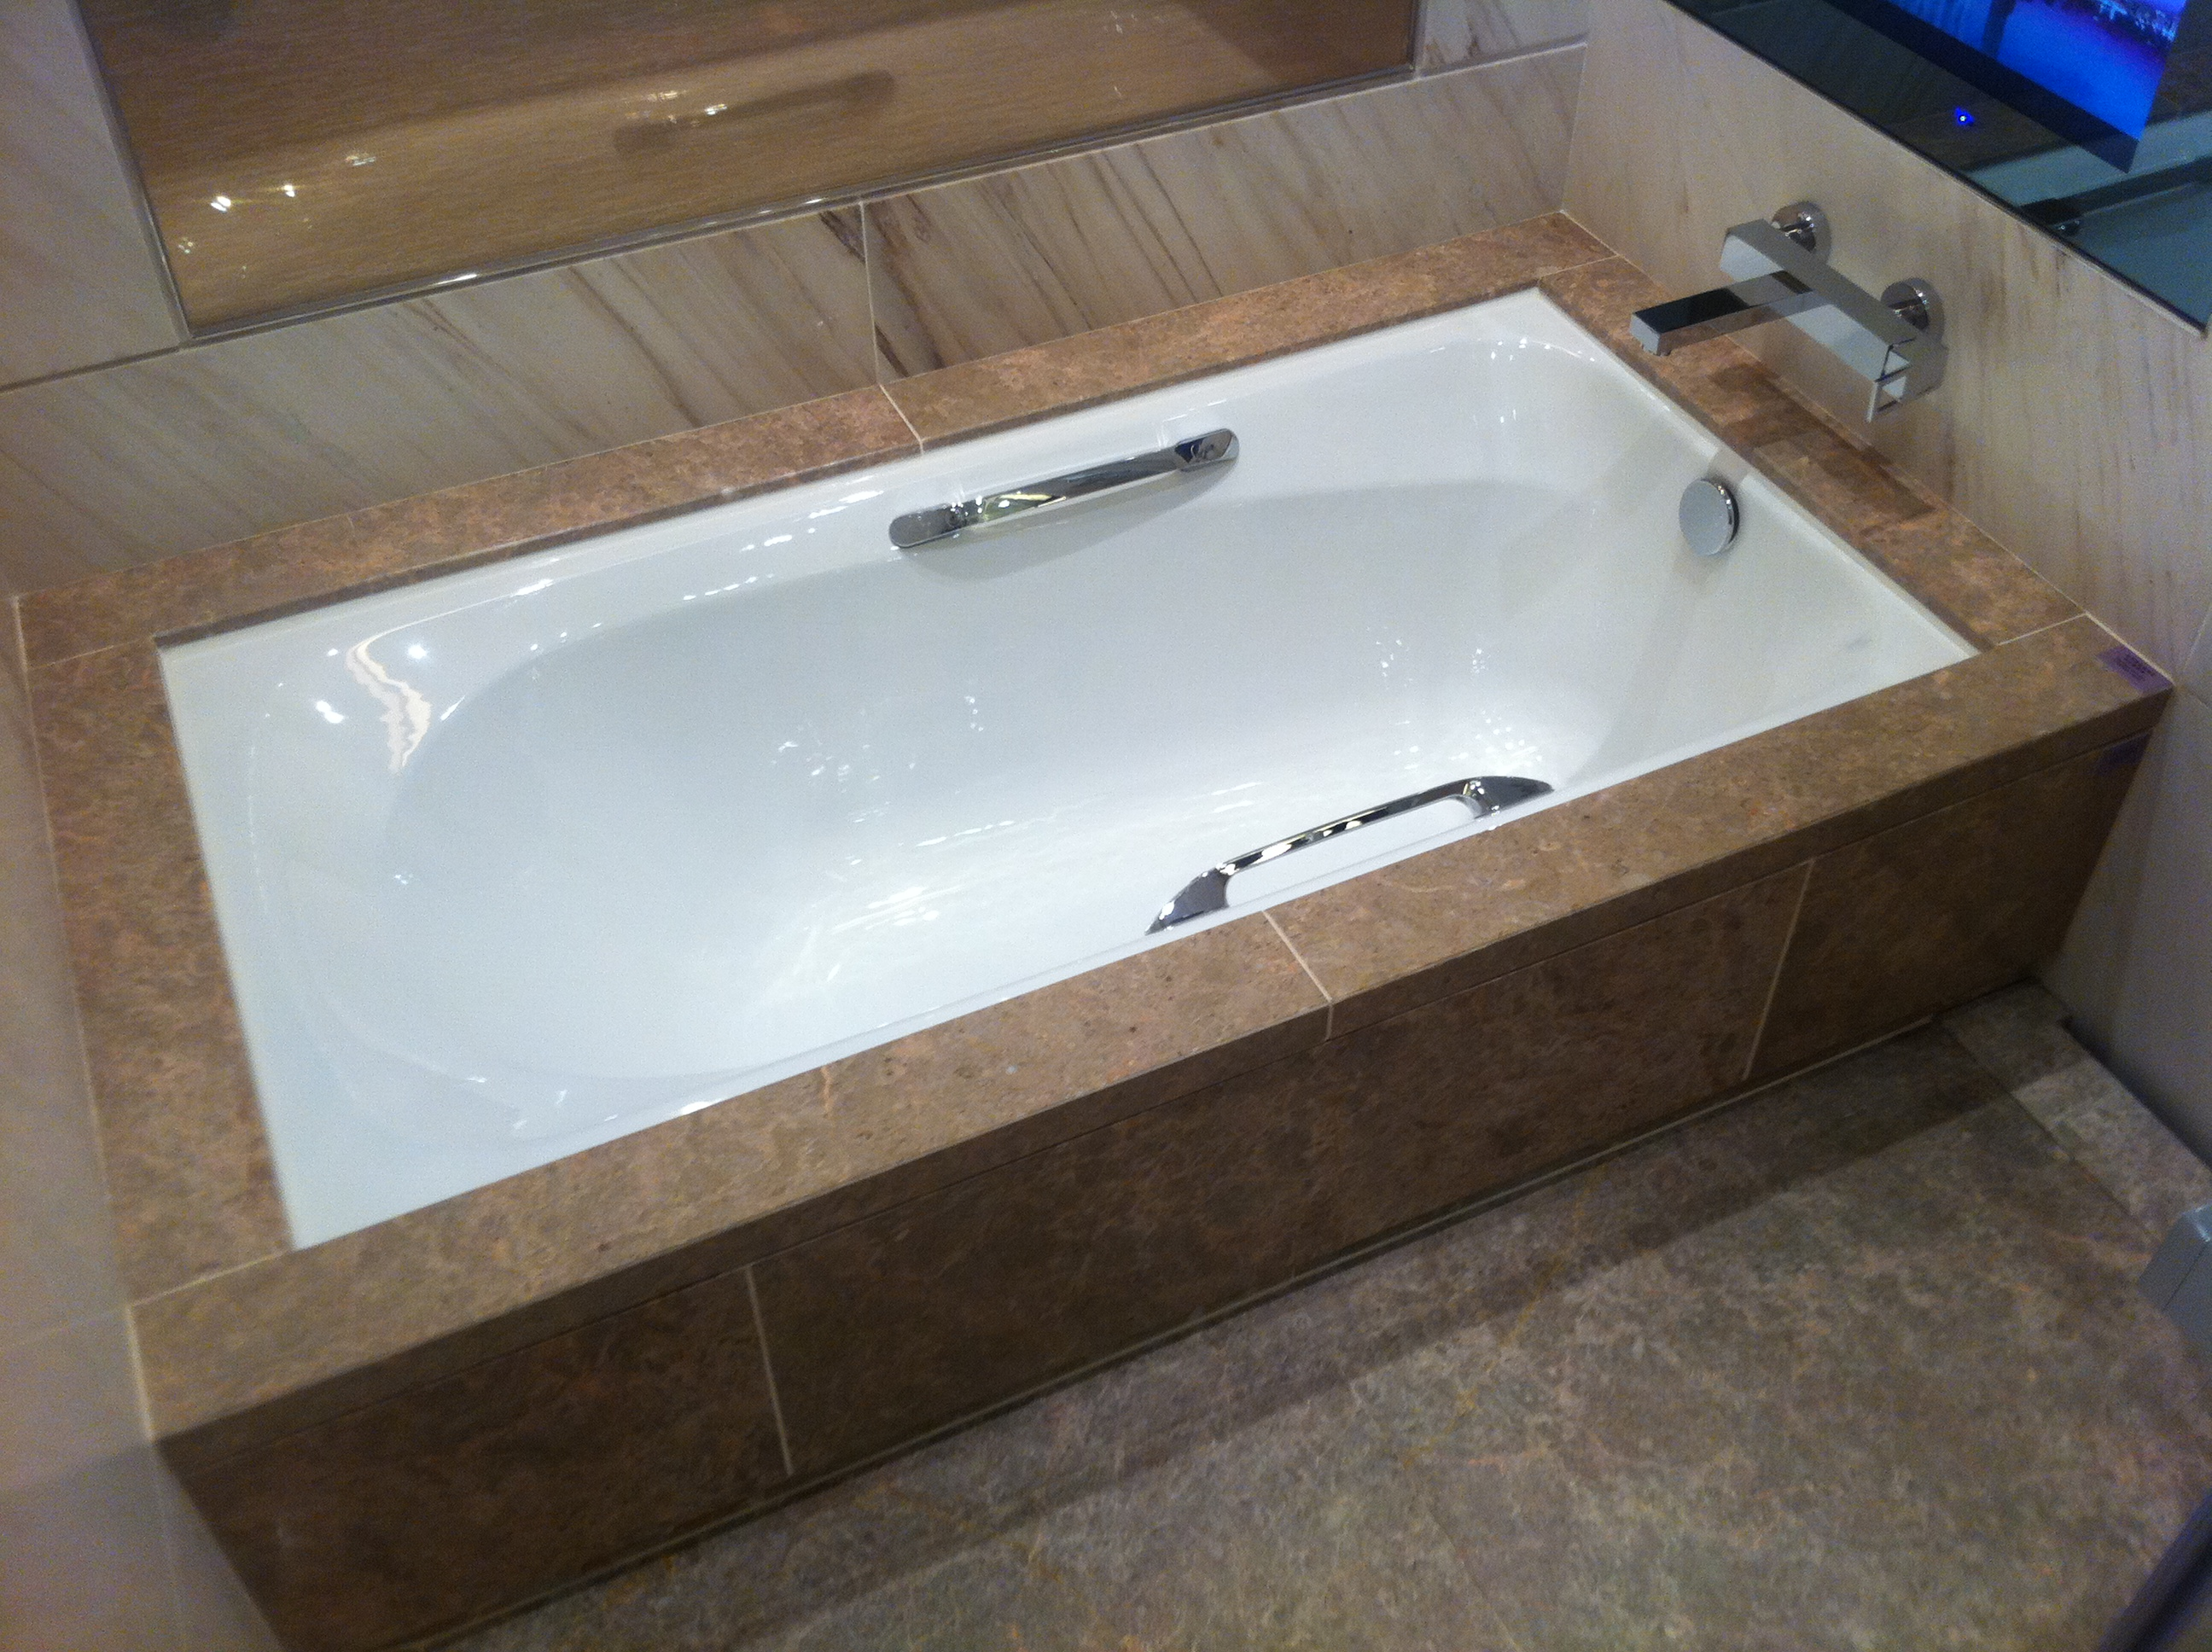 Spot Repair vs Full Refinishing | Seattle Bathtub Guy, WA